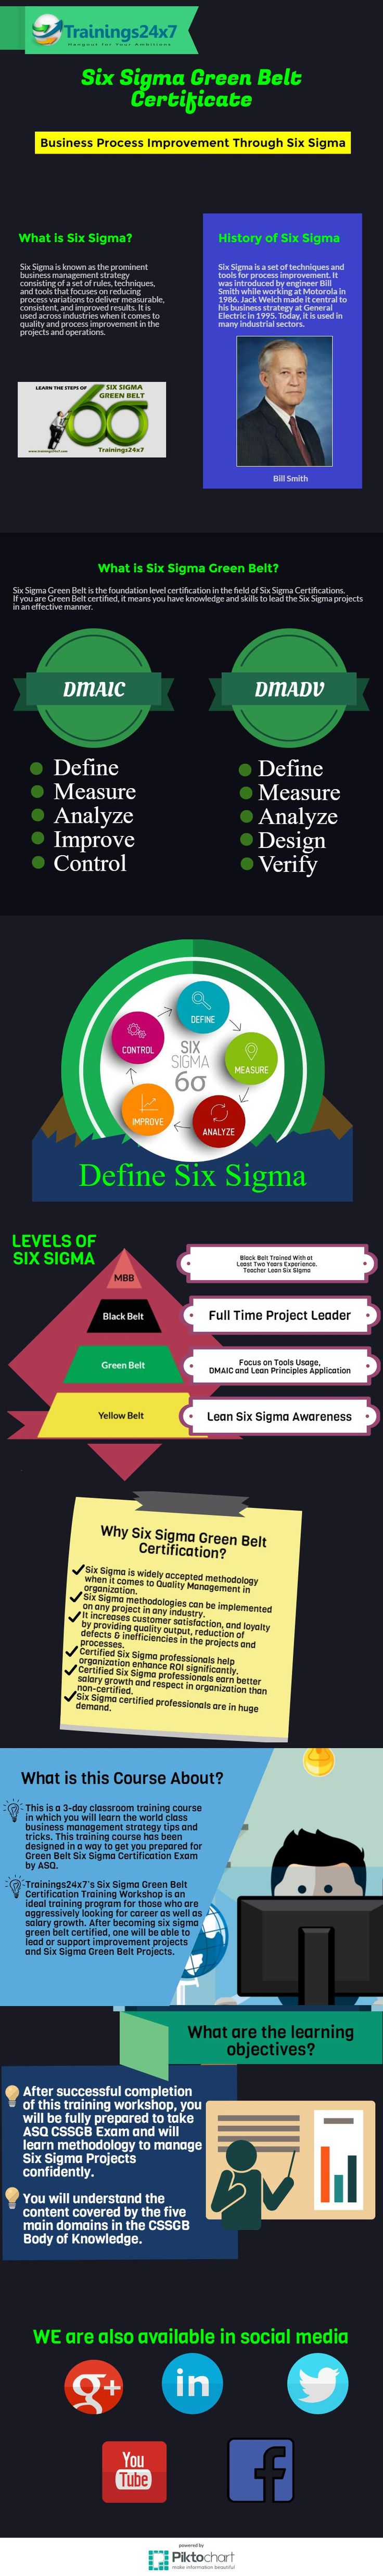 Six Sigma Certification infographic http://trainings24x7.com/six-sigma-green-belt-certifications/